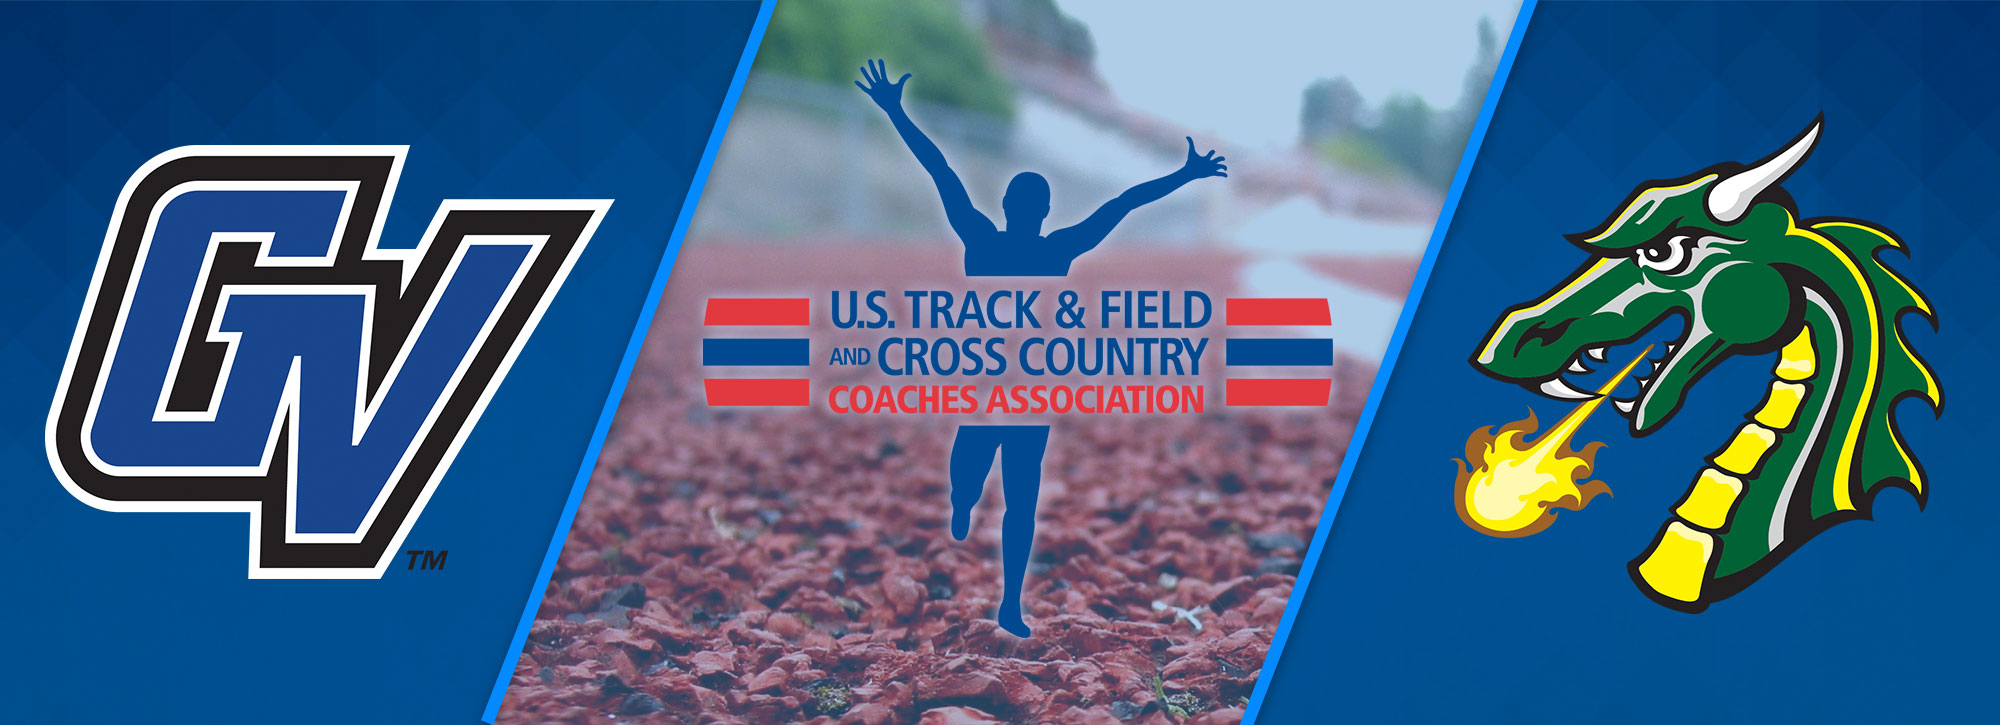 Tiffin Men, Grand Valley State Women Named USTFCCCA Scholar Teams of the Year; Ten Achieve All-Academic Status